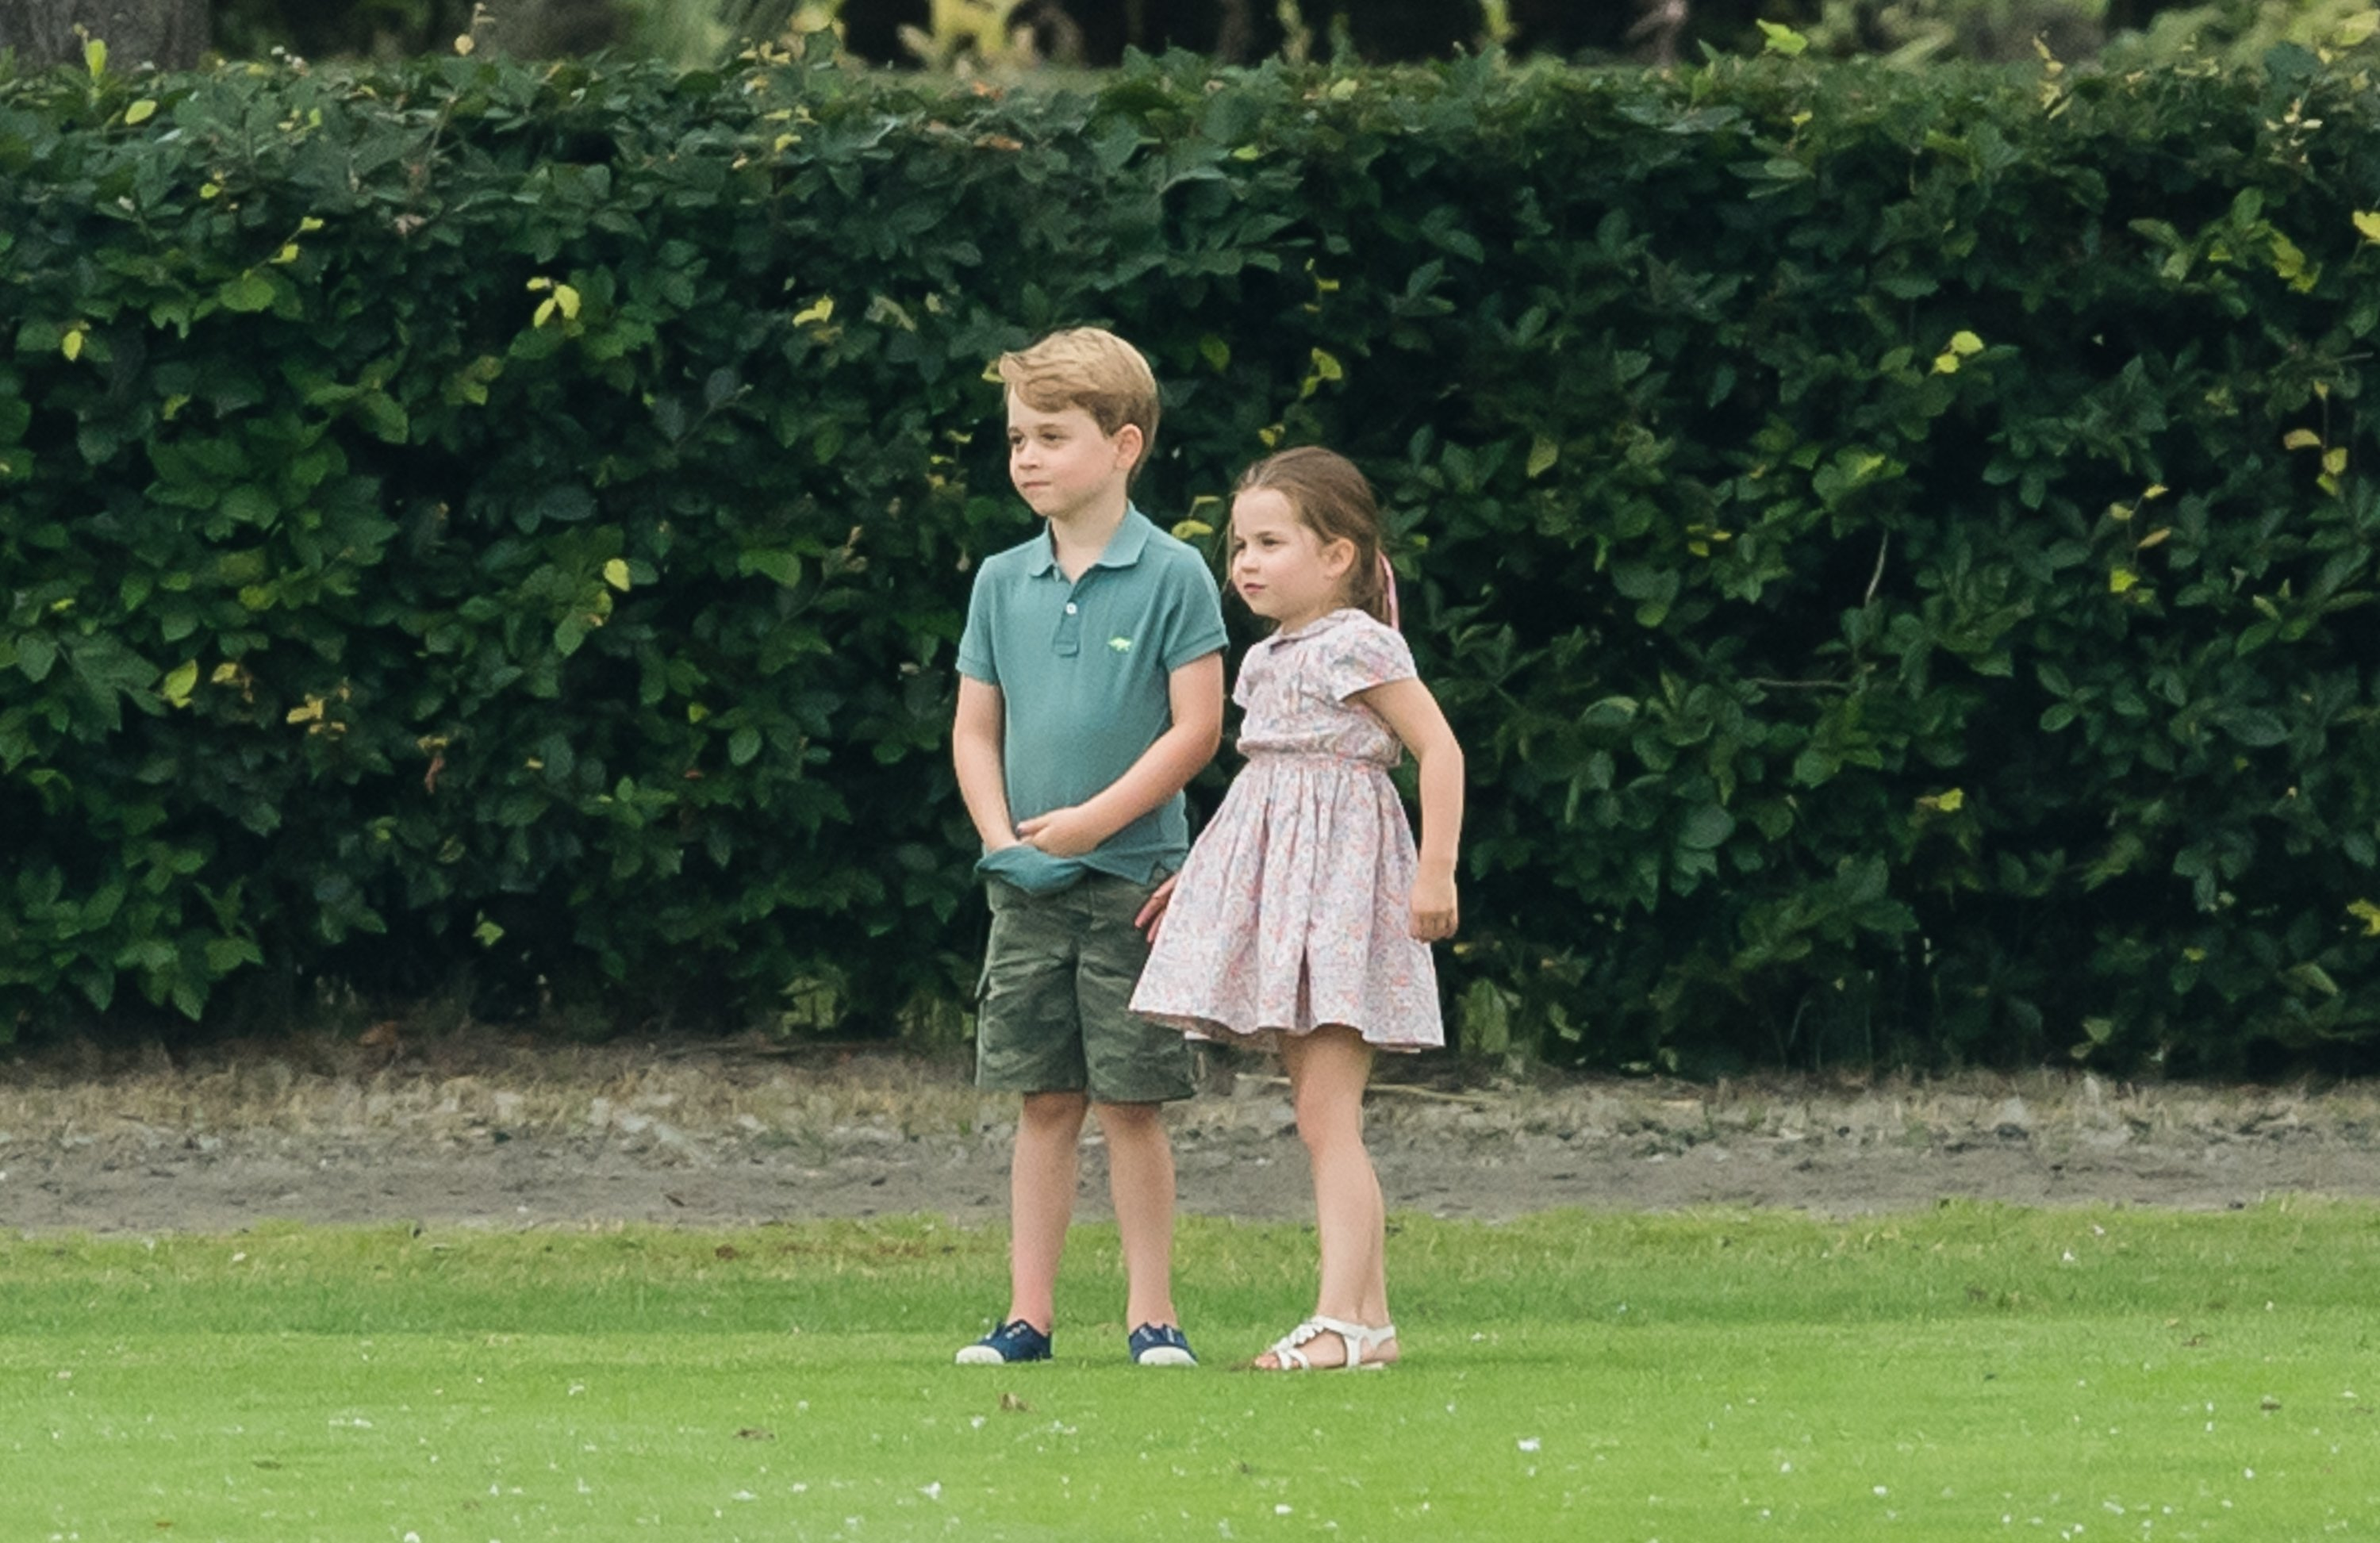 Prince George and Princess Charlotte attend The King Power Royal Charity Polo Day at Billingbear Polo Club on July 10, 2019 in Wokingham, England. | Source: Getty Images